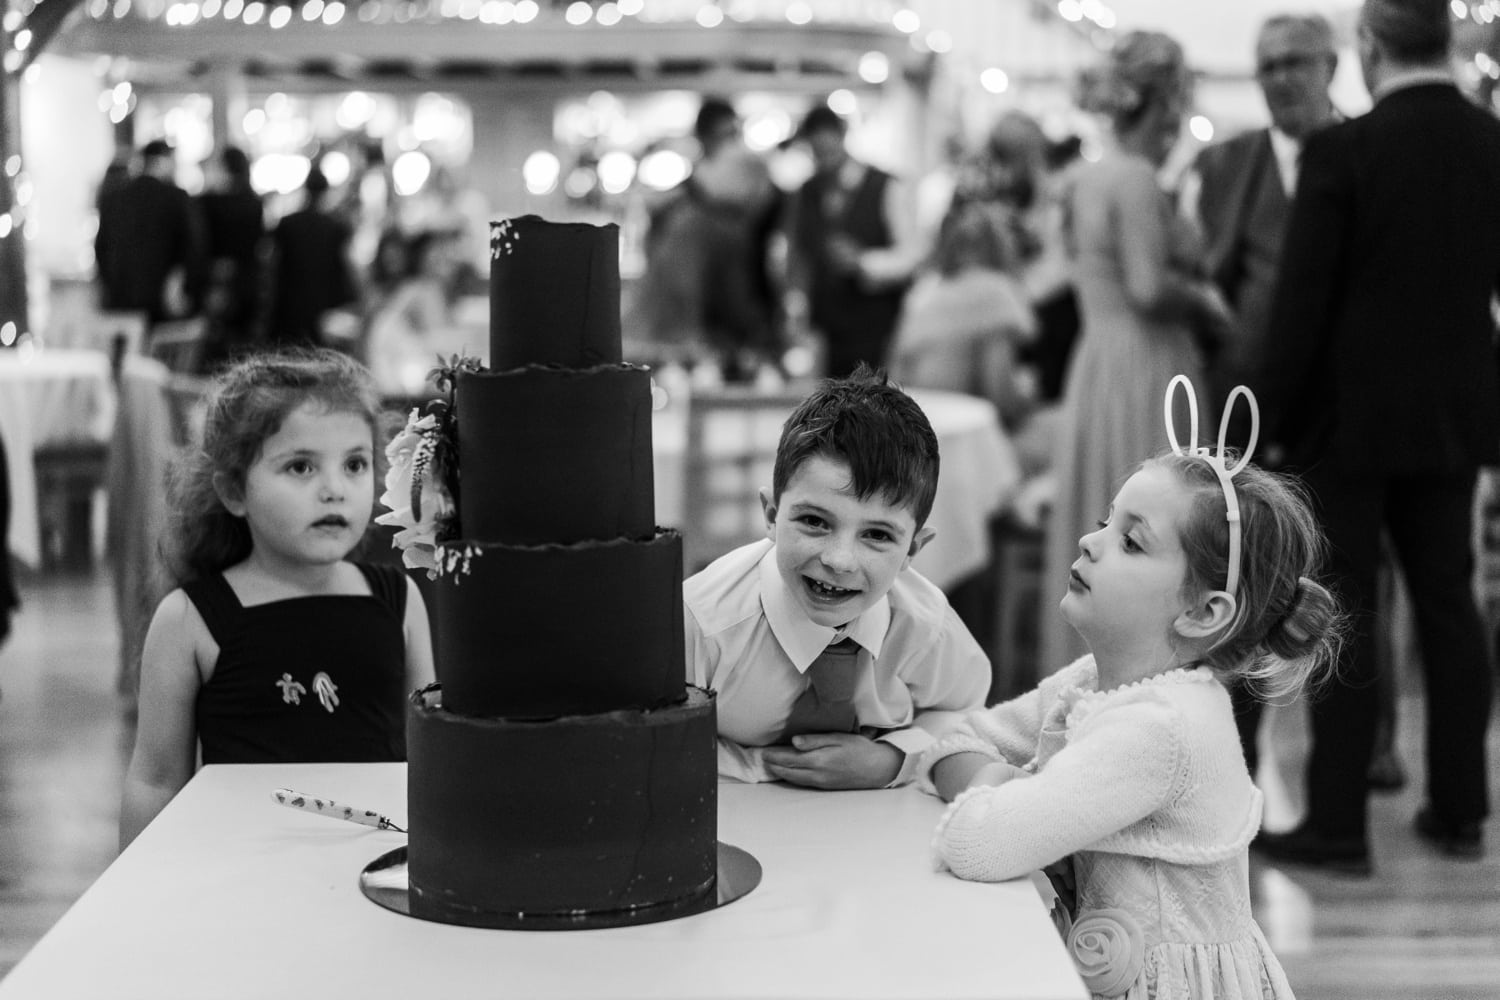 Children looking at the wedding cake at the King Arthur Hotel, Gower, South Wales